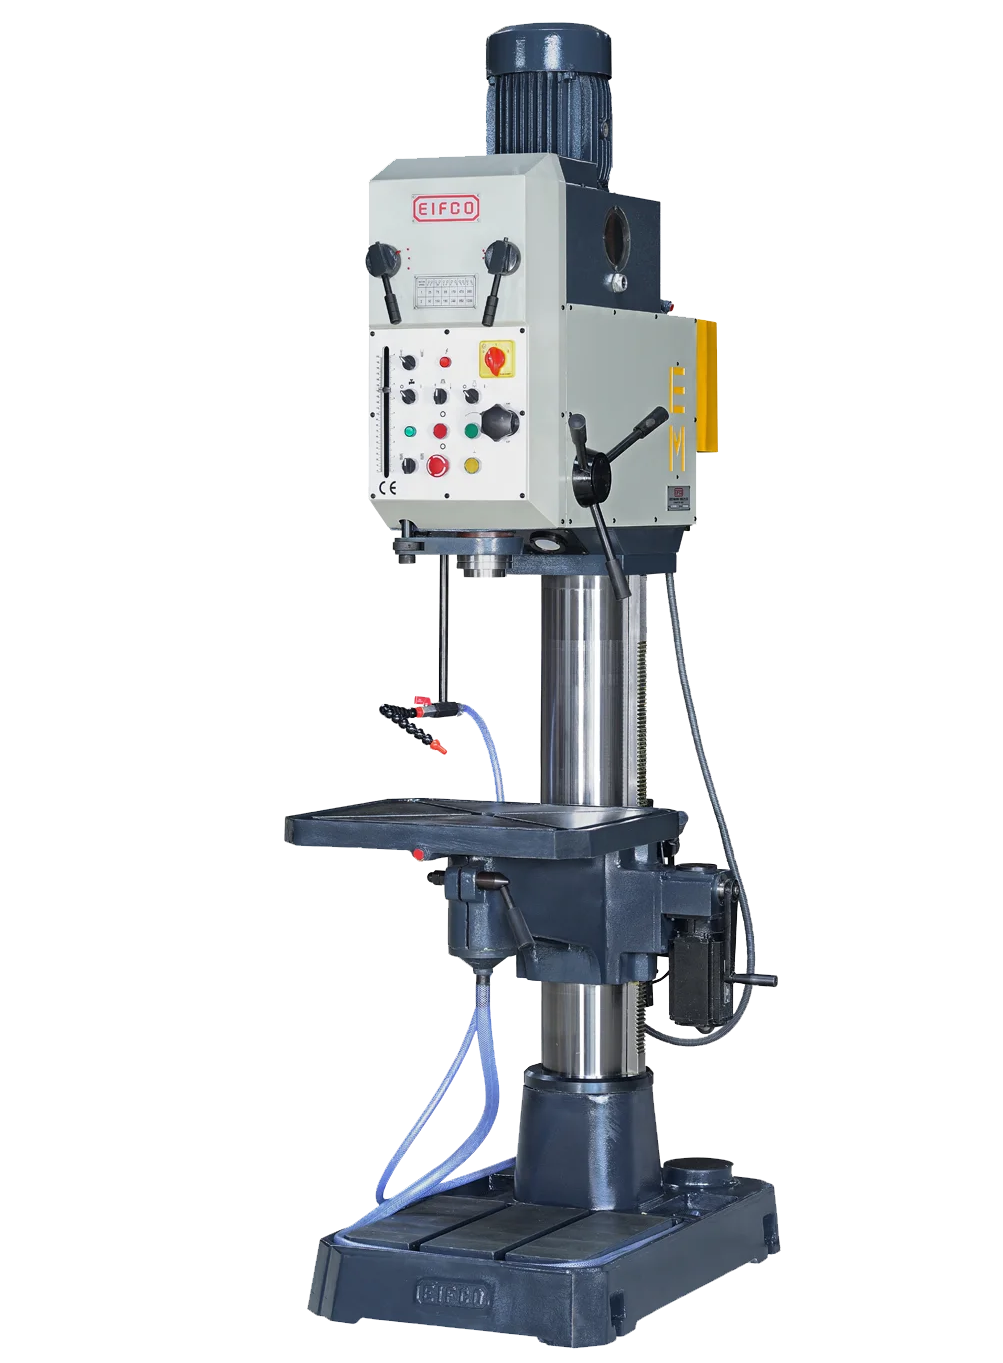 Eifco -Pillar Drilling Machine (Heavy Duty) - Auto Feed 50mm